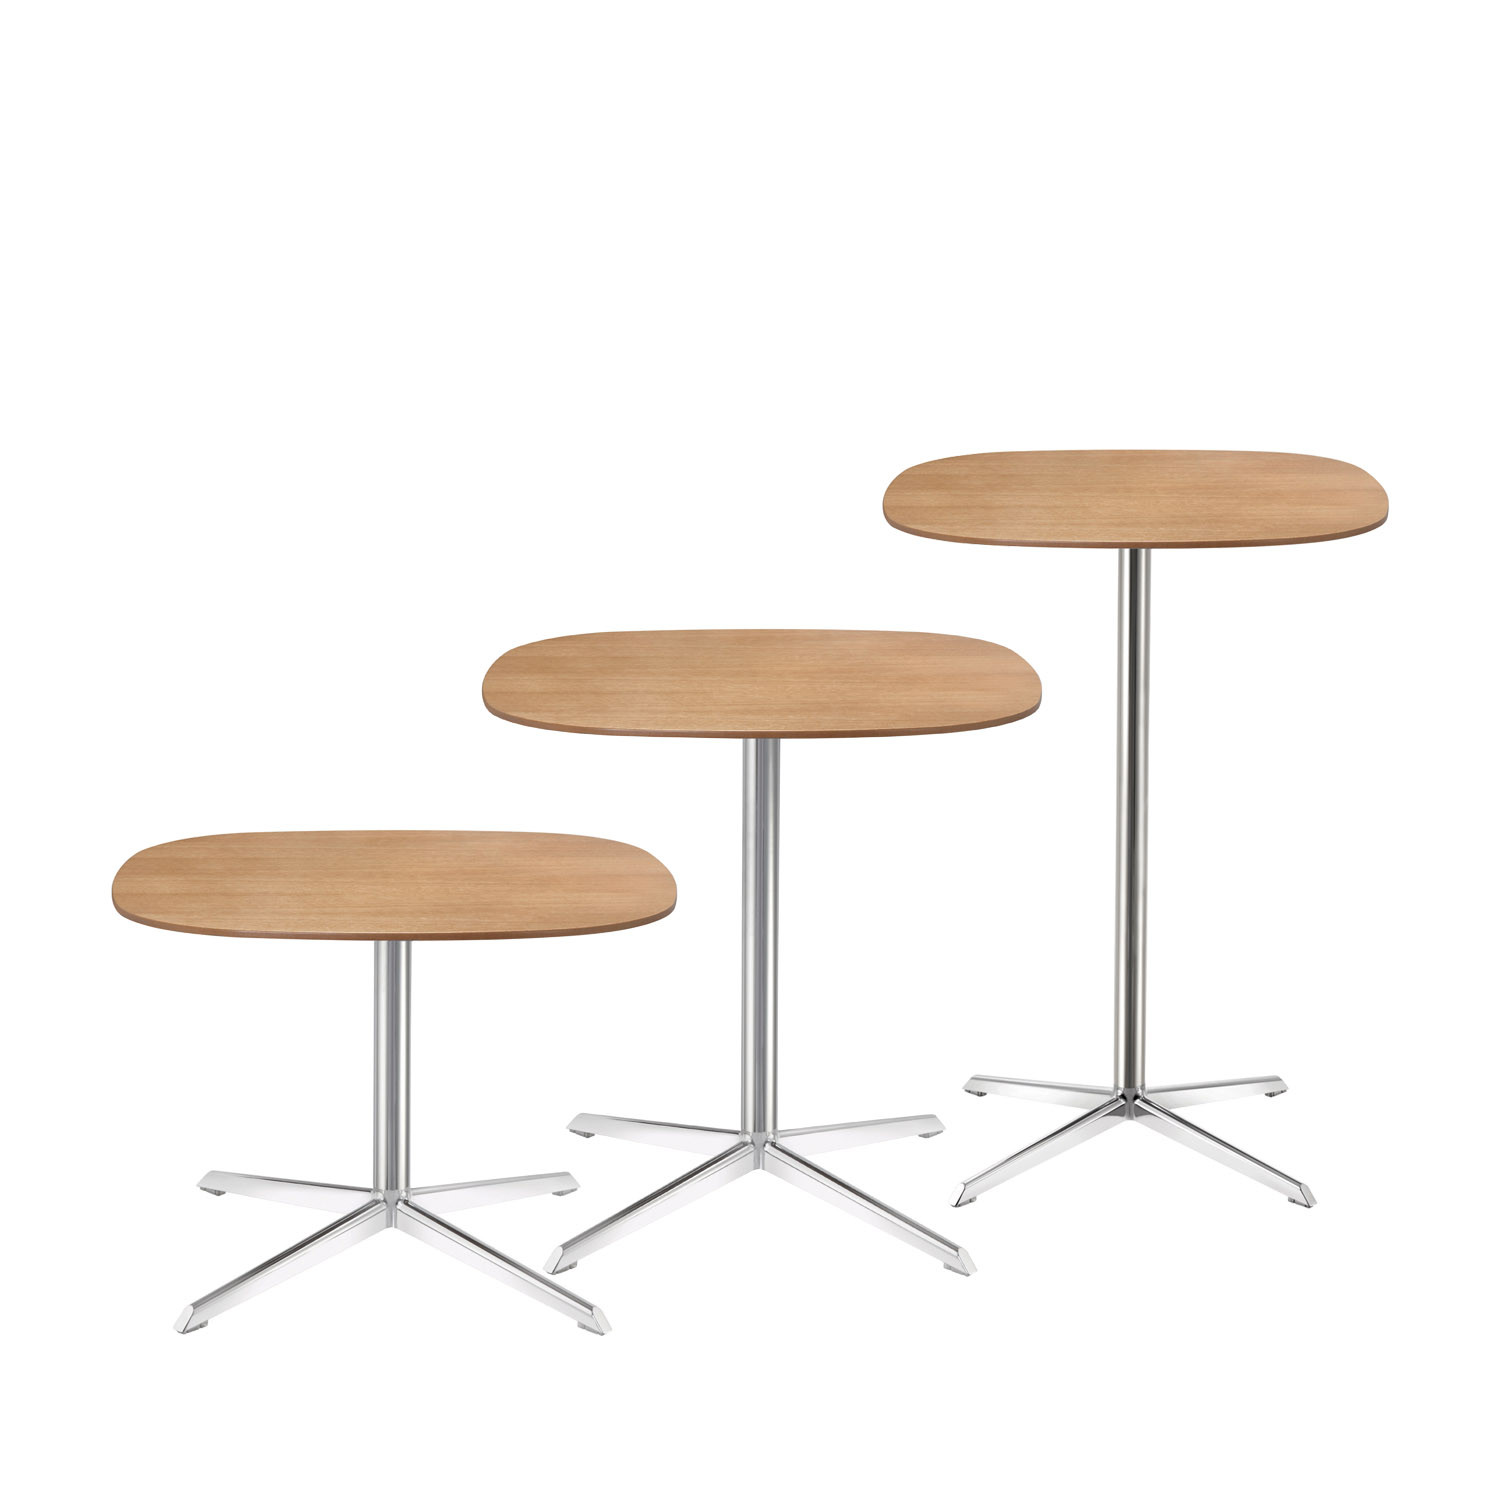 David Fox Halo Table Range